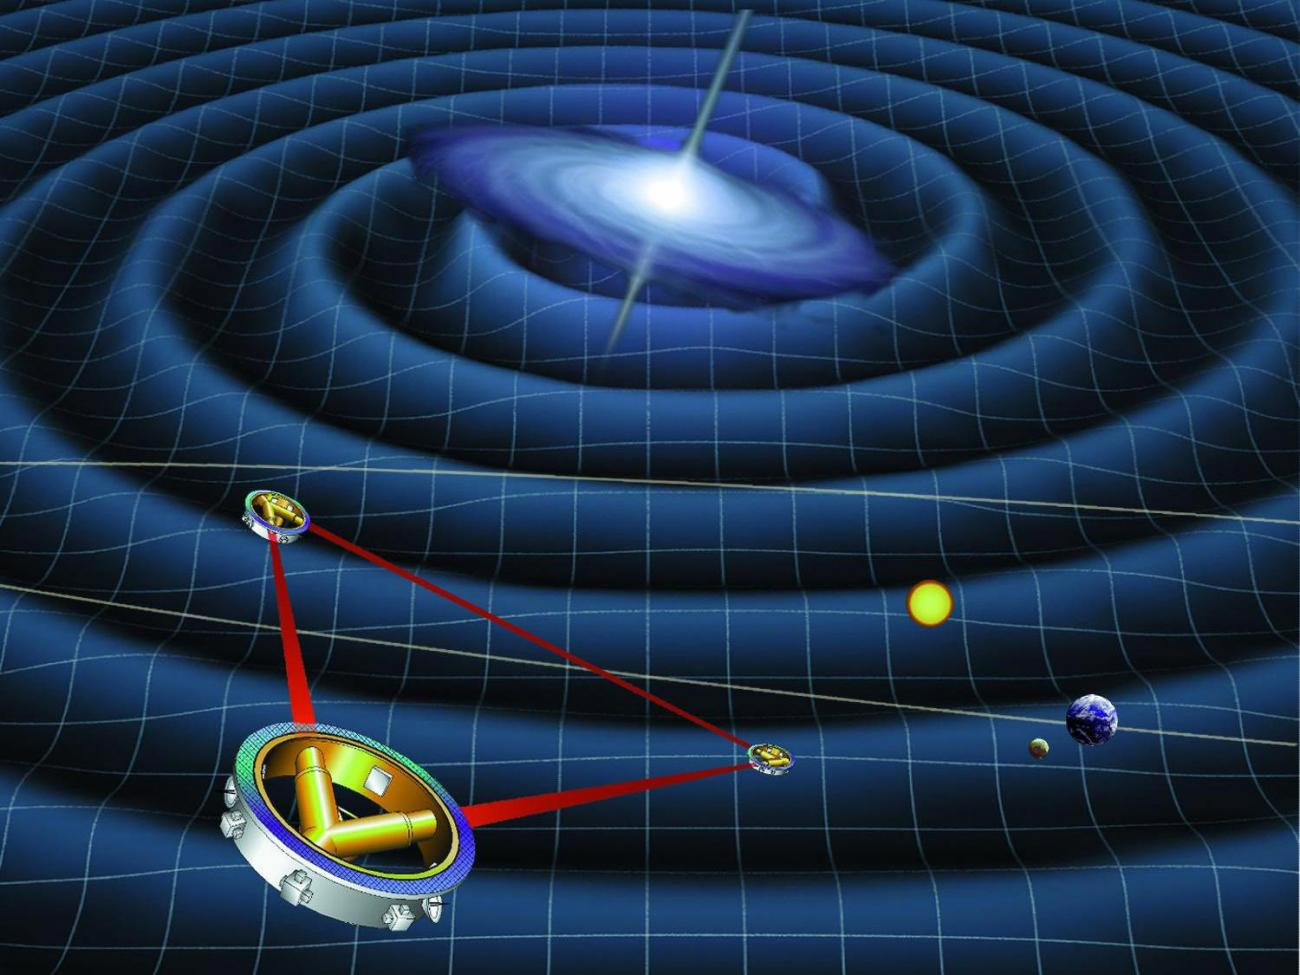 An artists impression of the propagation of gravitational waves through space